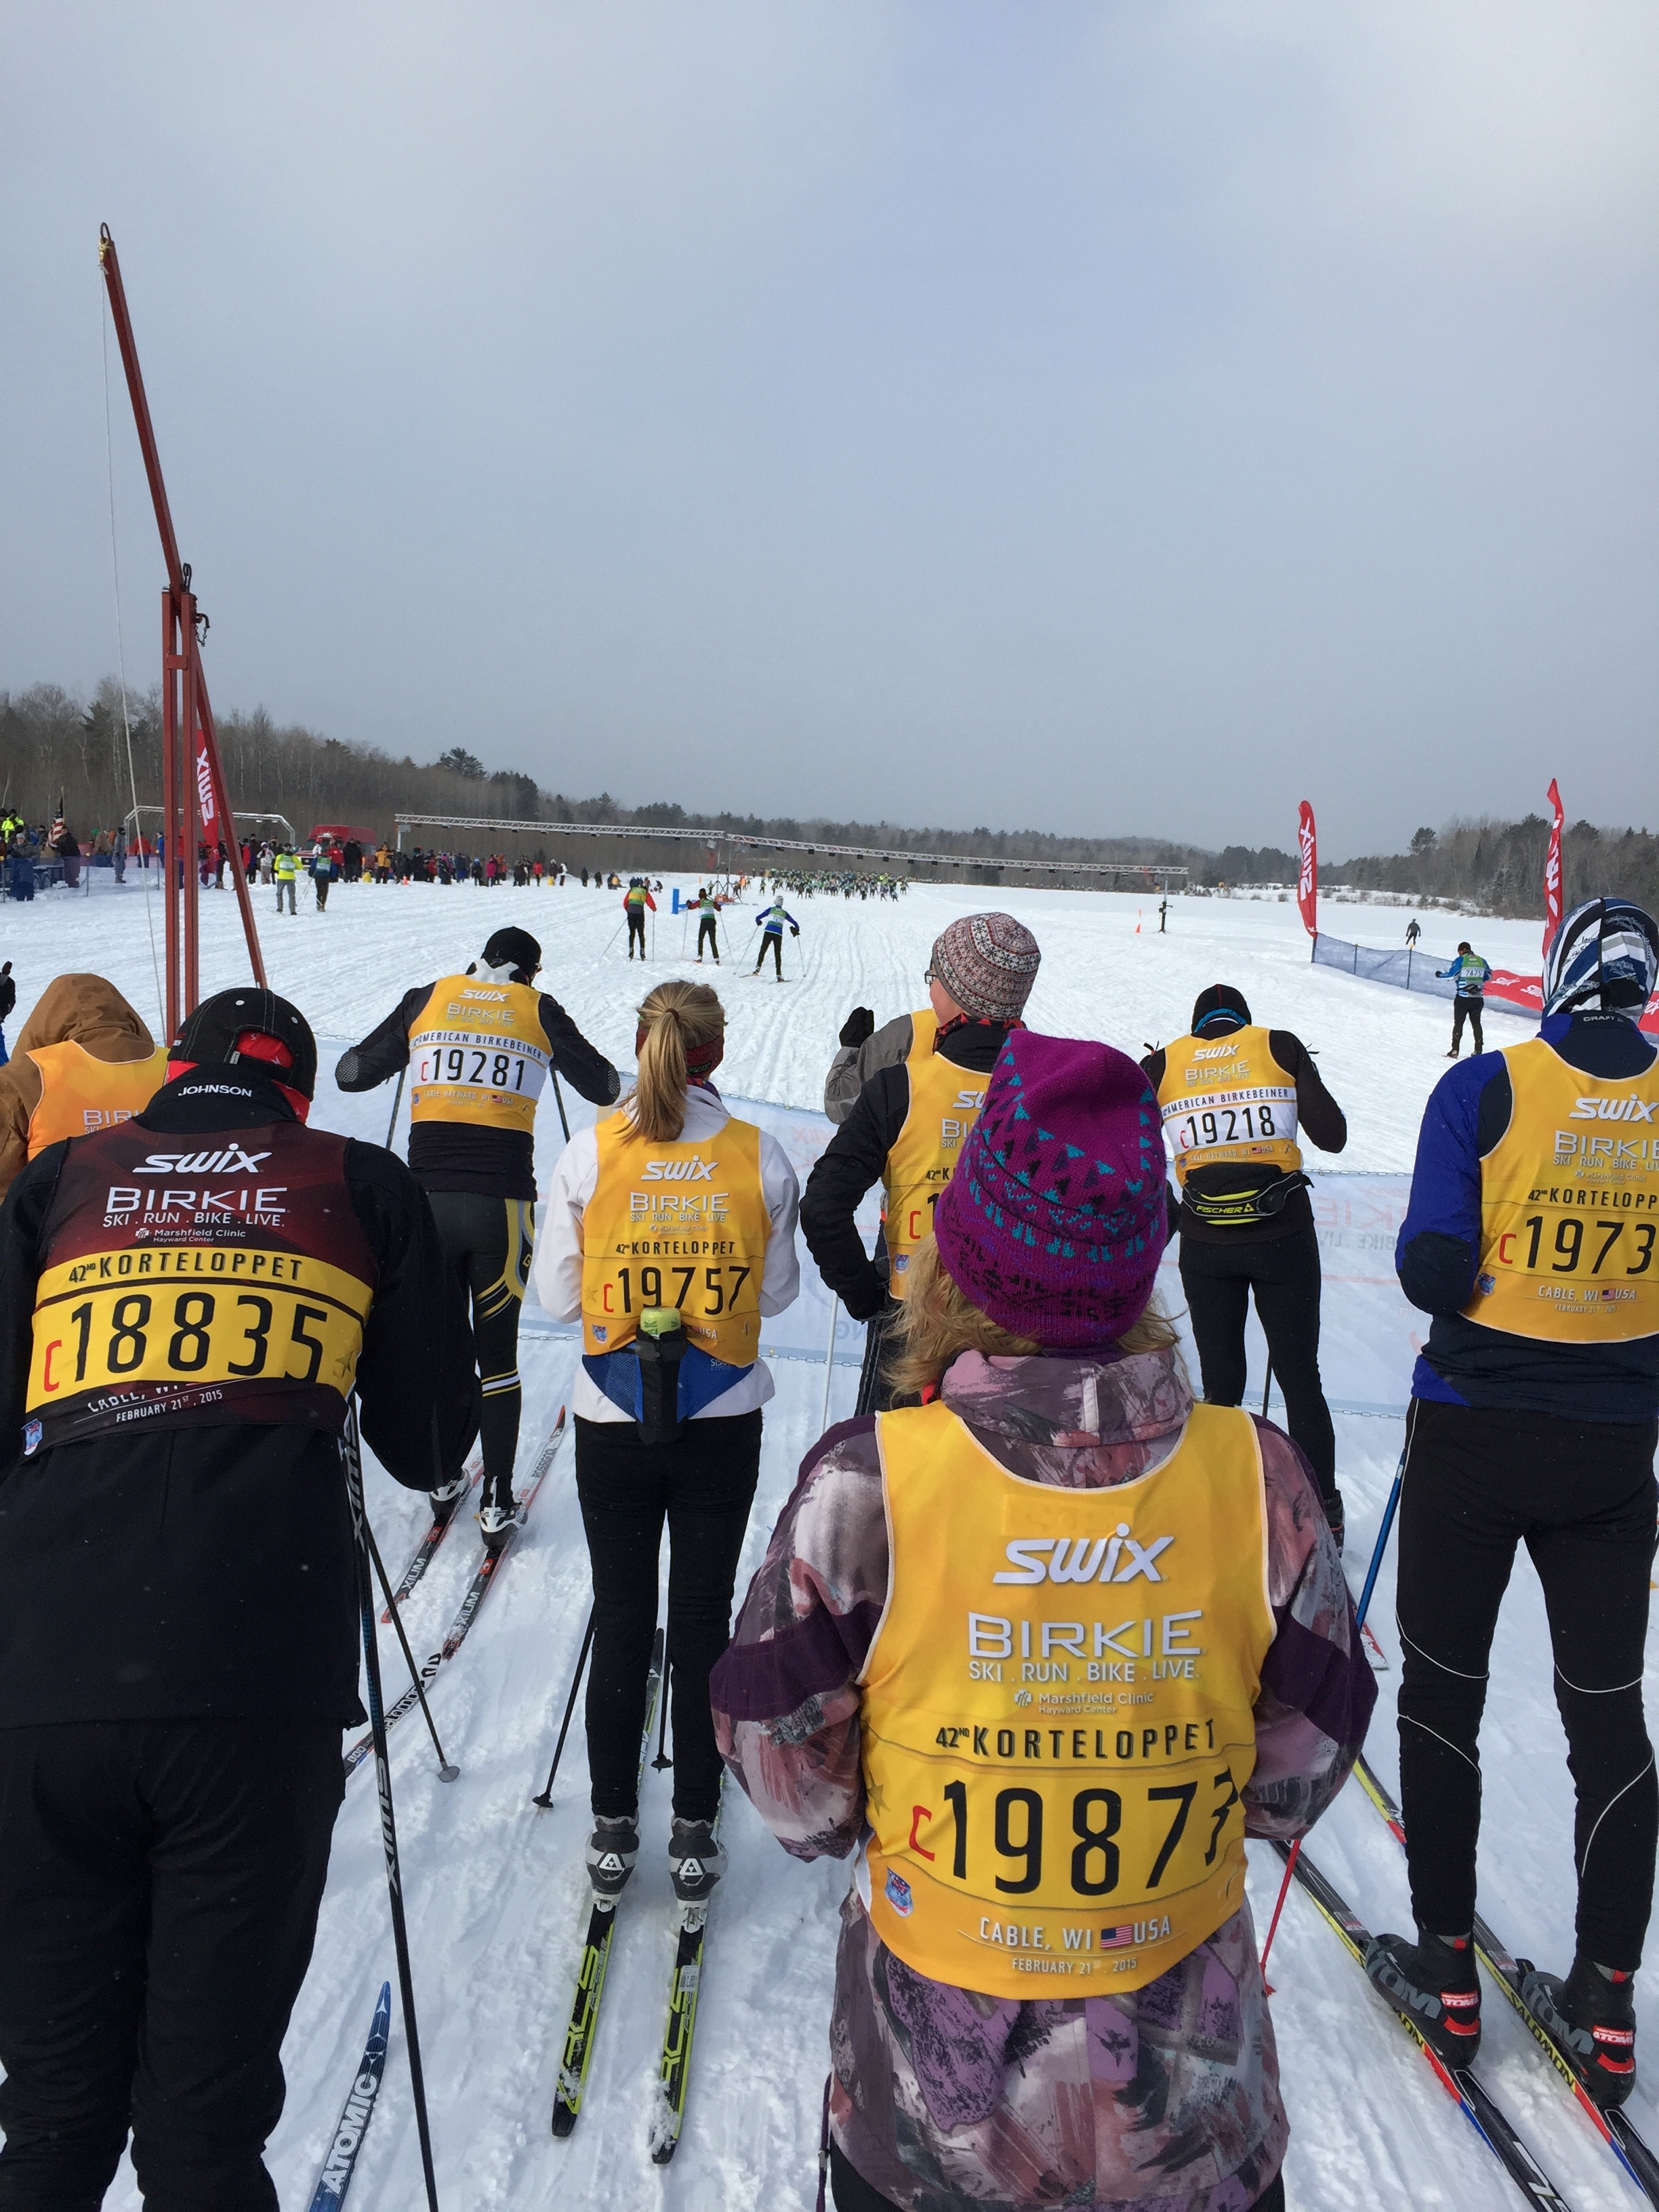 Our view of the start line at the American Birkie - Wave 12